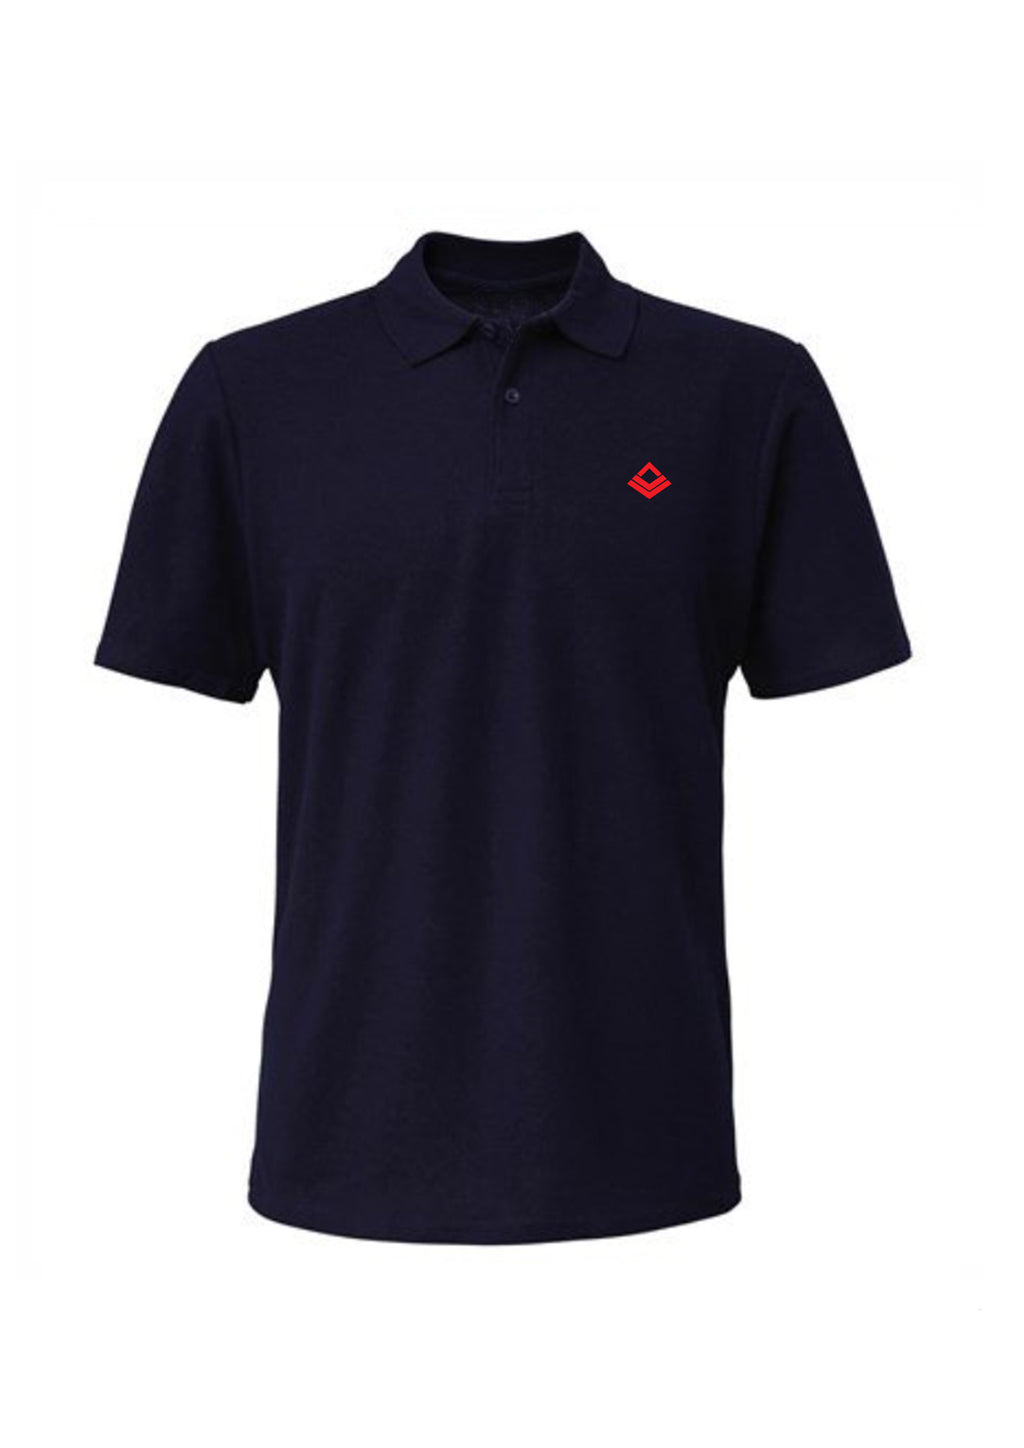 Swaggerlicious Navy Simple Polo Shirt with Red Logo